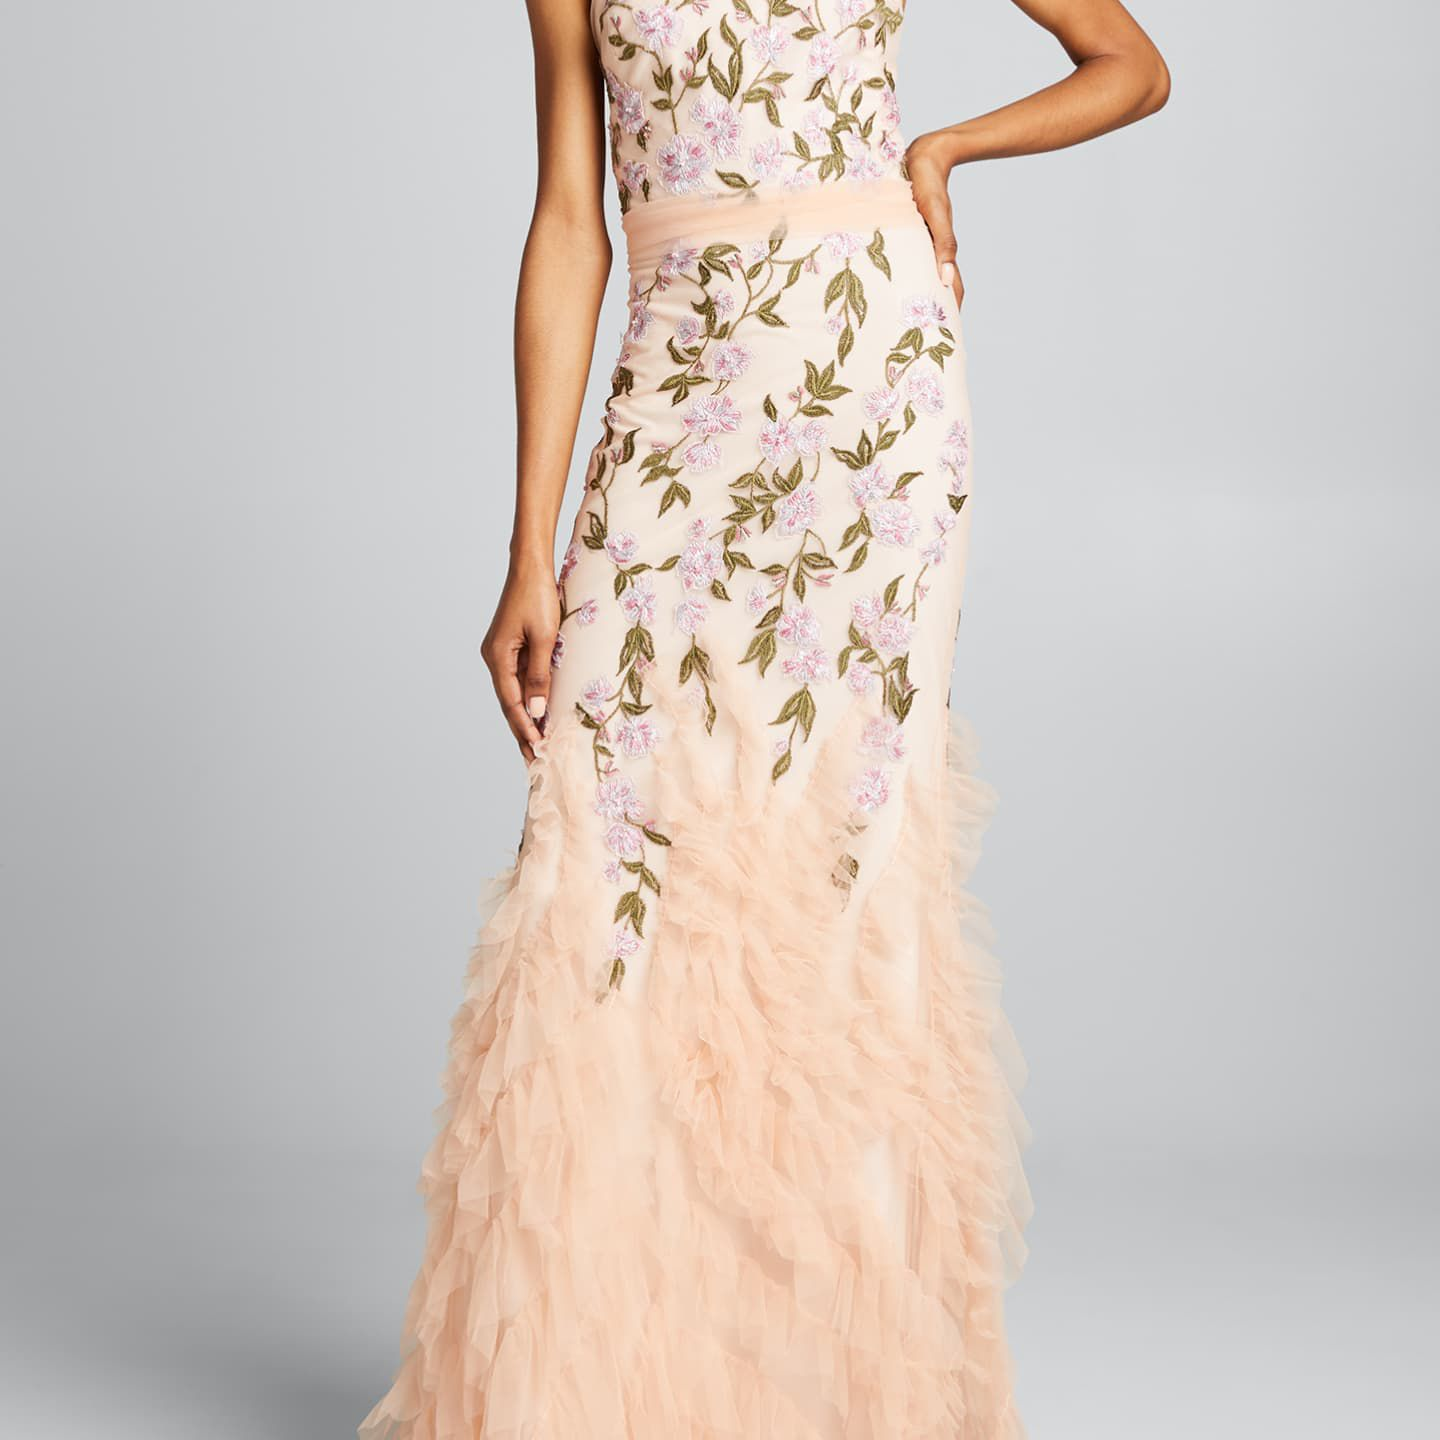 Model in multicolored gown with floral embellishment and feathered tulle skirt